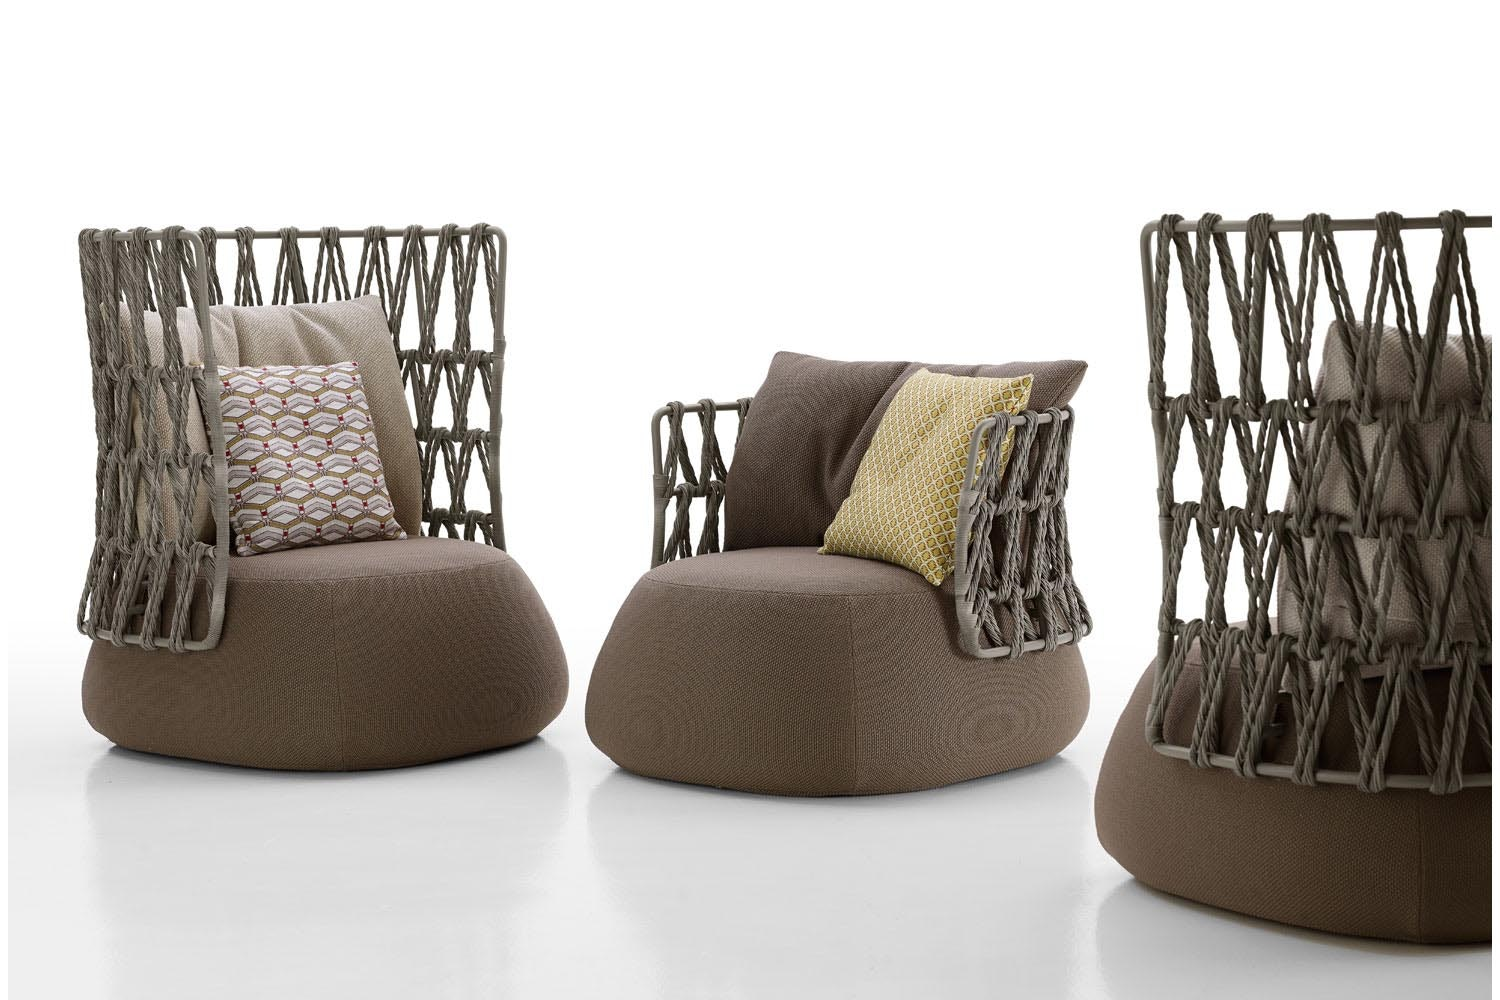 Fat-Sofa Outdoor Armchair by Patricia Urquiola for B&B Italia